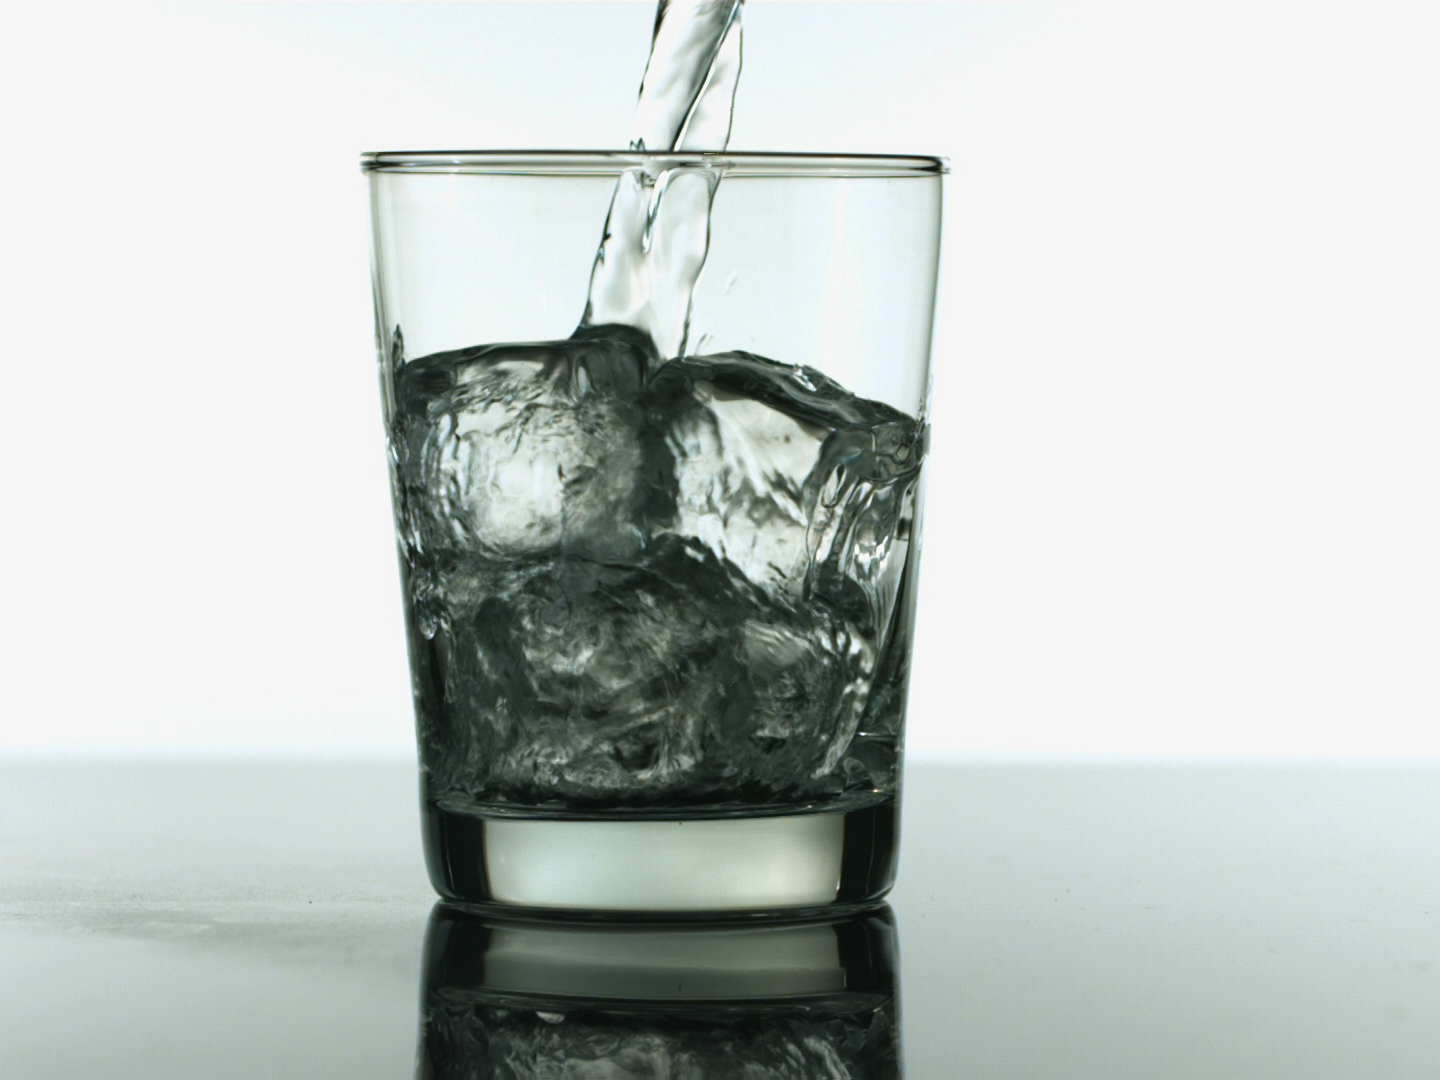 You need to drink eight glasses of water a day